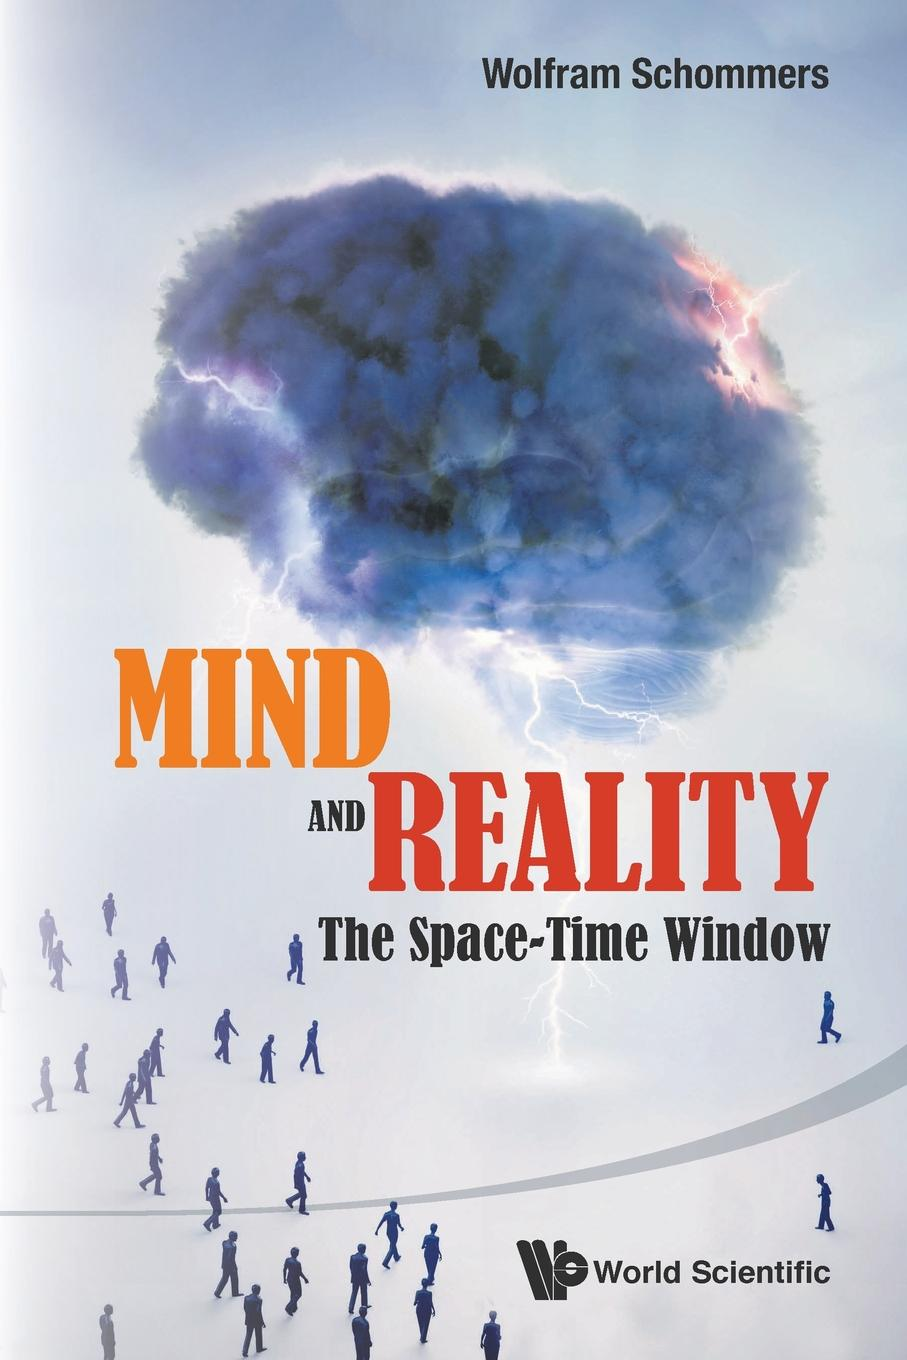 WOLFRAM SCHOMMERS Mind and Reality. The Space-Time Window